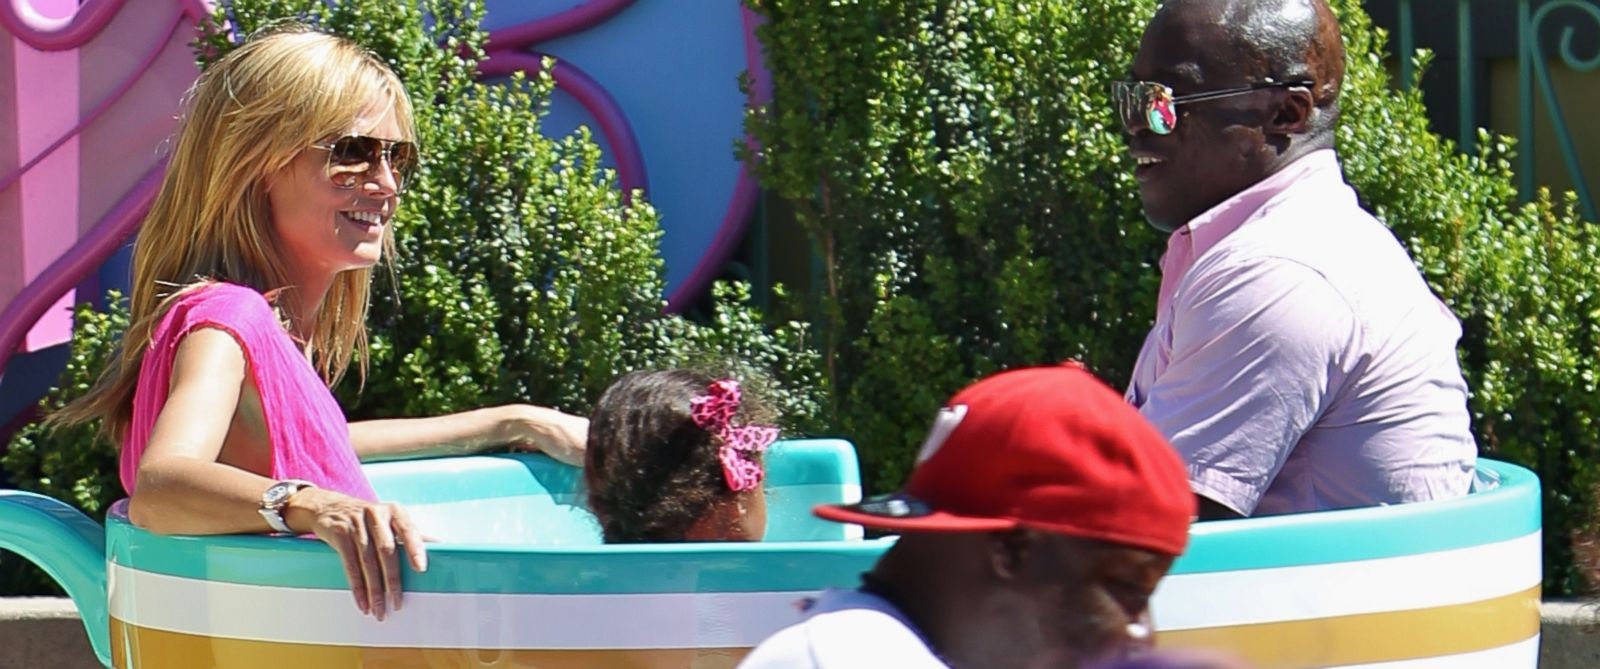 PHOTO: Heidi Klum and Seal spend the day at Disneyland in Anaheim, Calif. with the children, May 28, 2014.